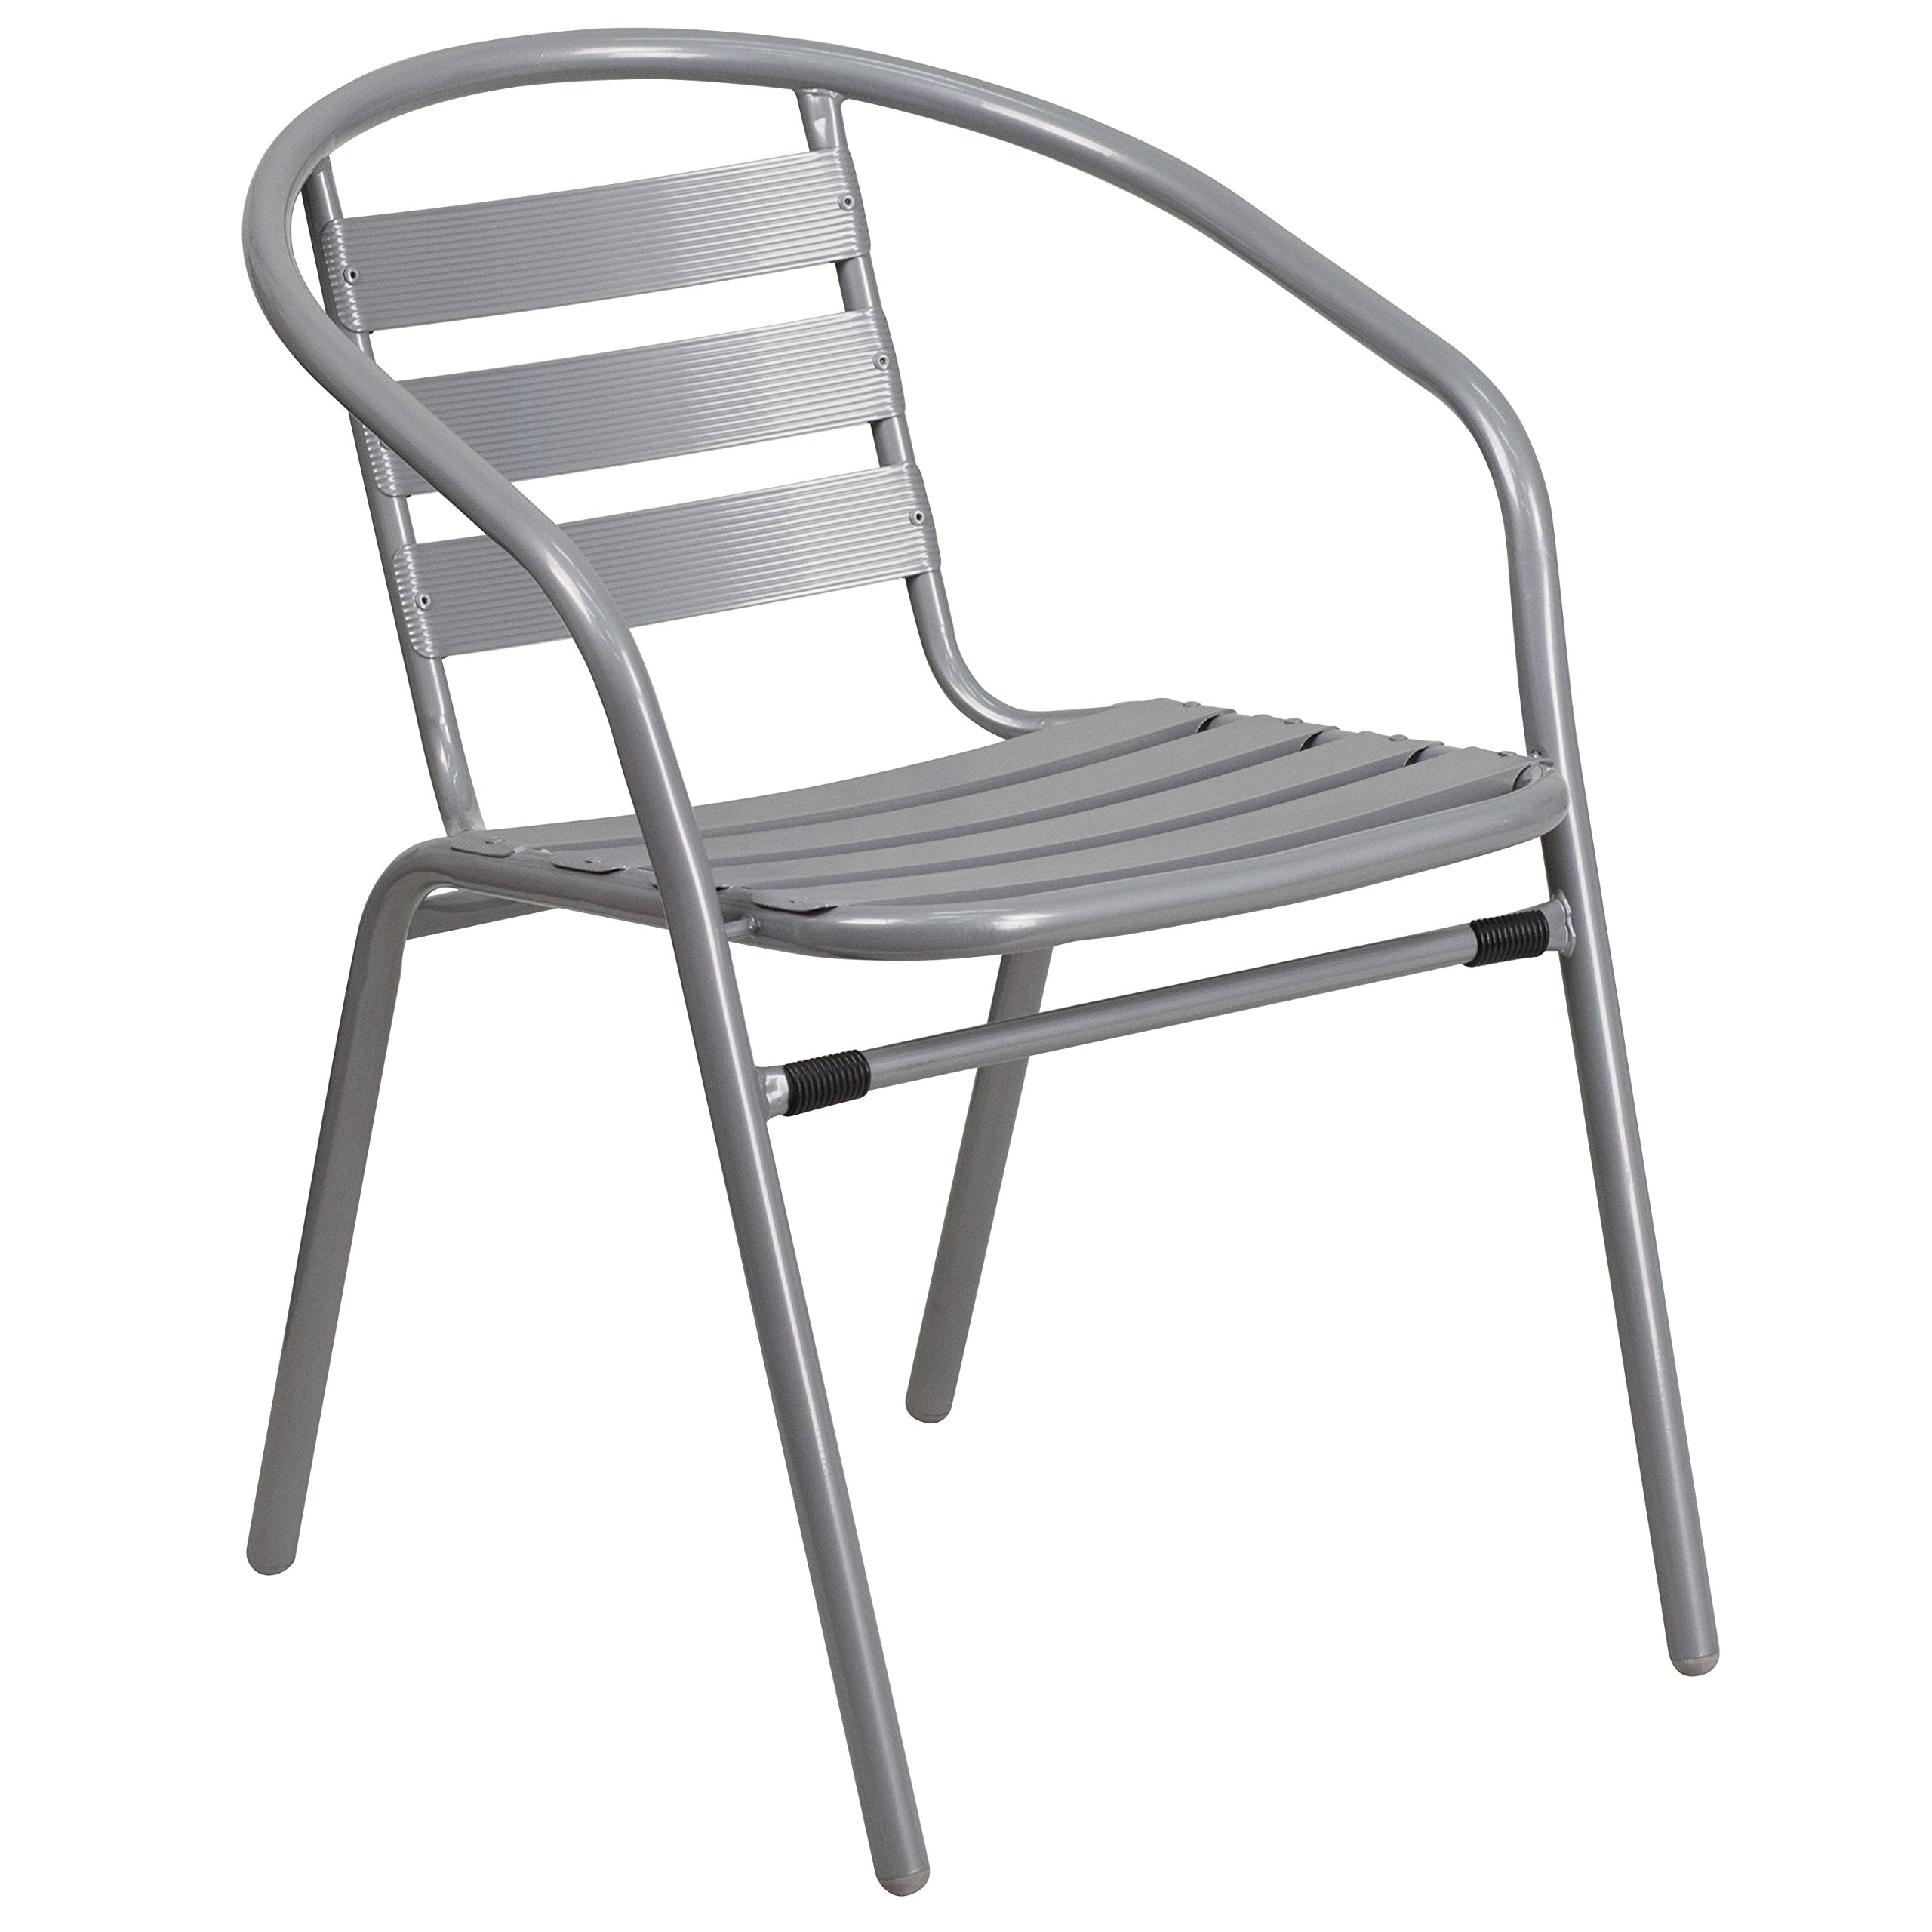 Flash Furniture 4 Pk. Silver Metal Restaurant Stack Chair with Aluminum Slats by Flash Furniture (Image #2)